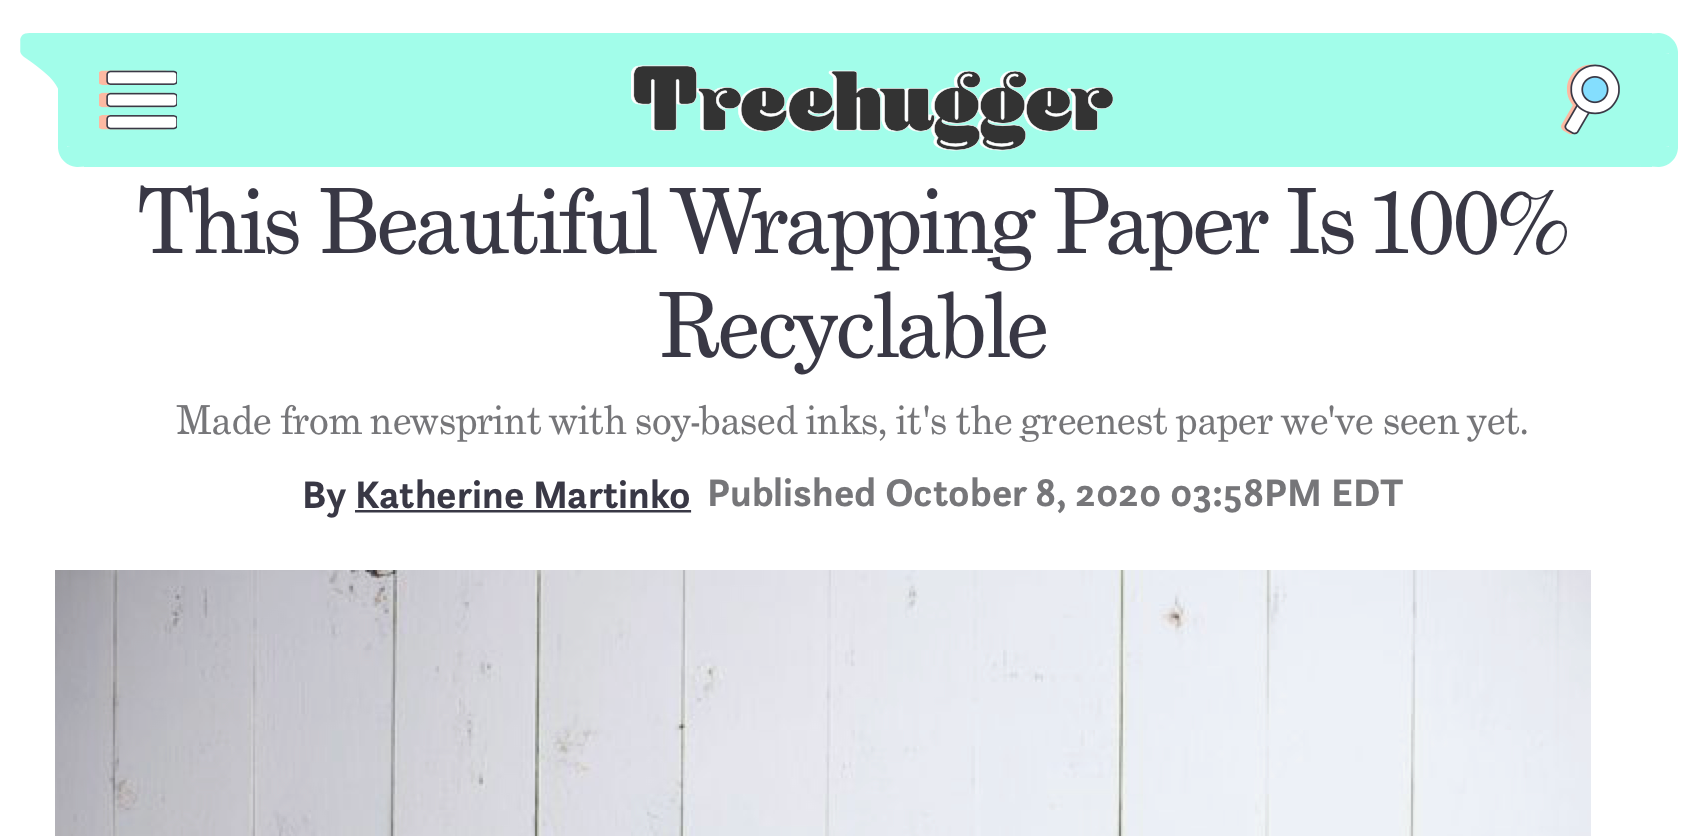 Wrappily on Trehugger.com